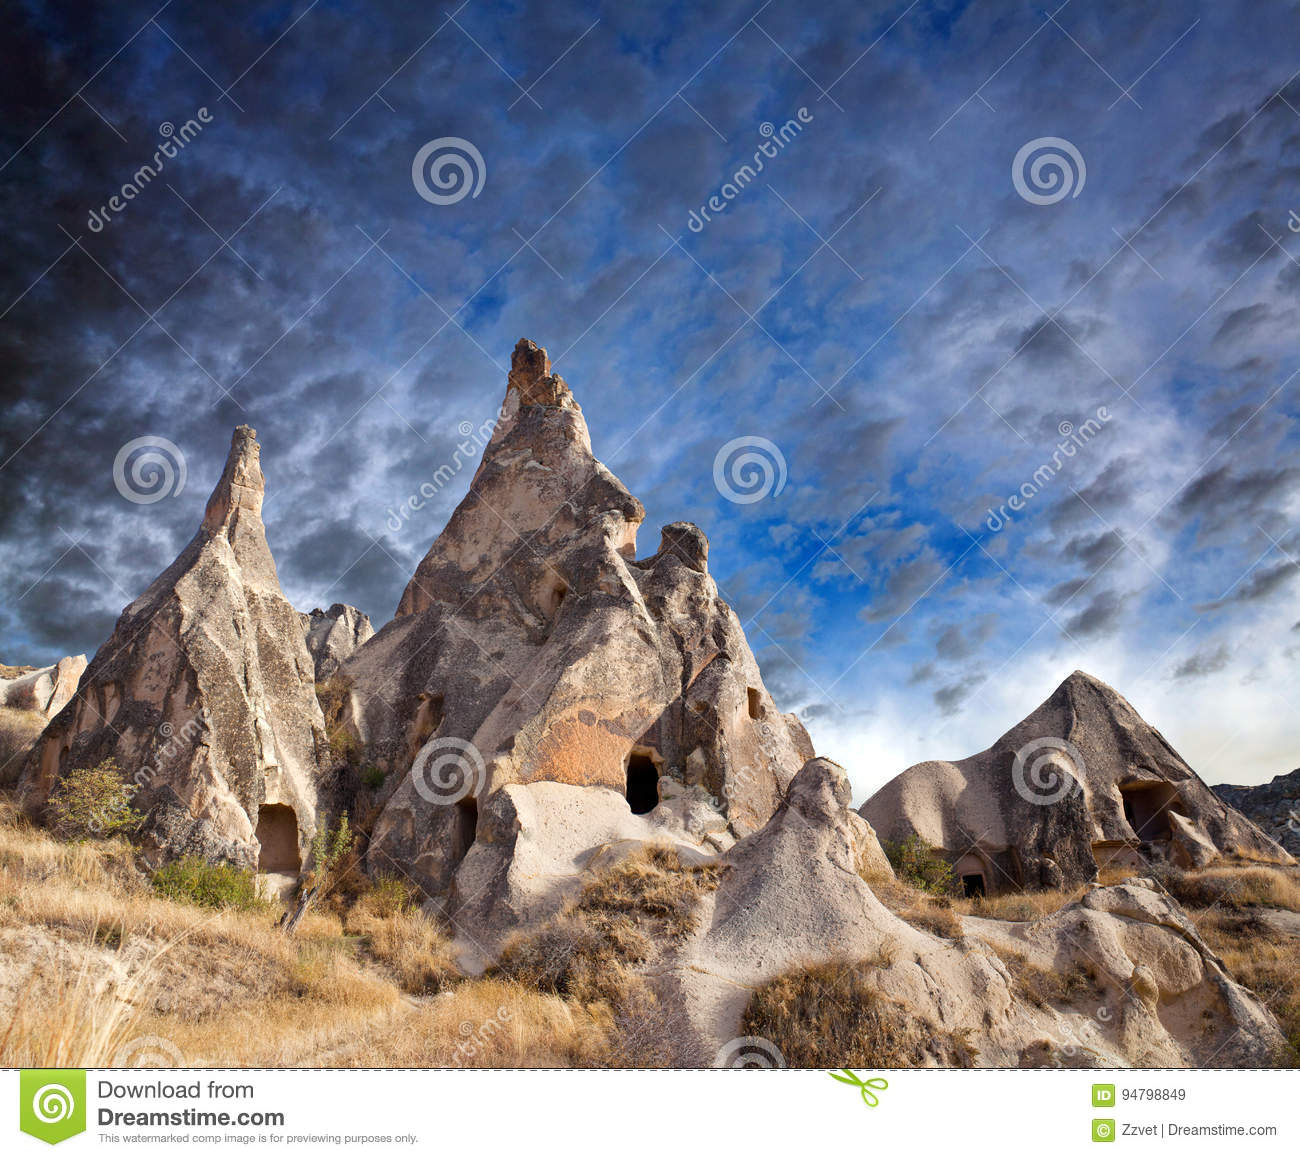 Download Unique Geological Formations In Cappadocia, Turkey Stock Image - Image of chimneys, geological: 94798849